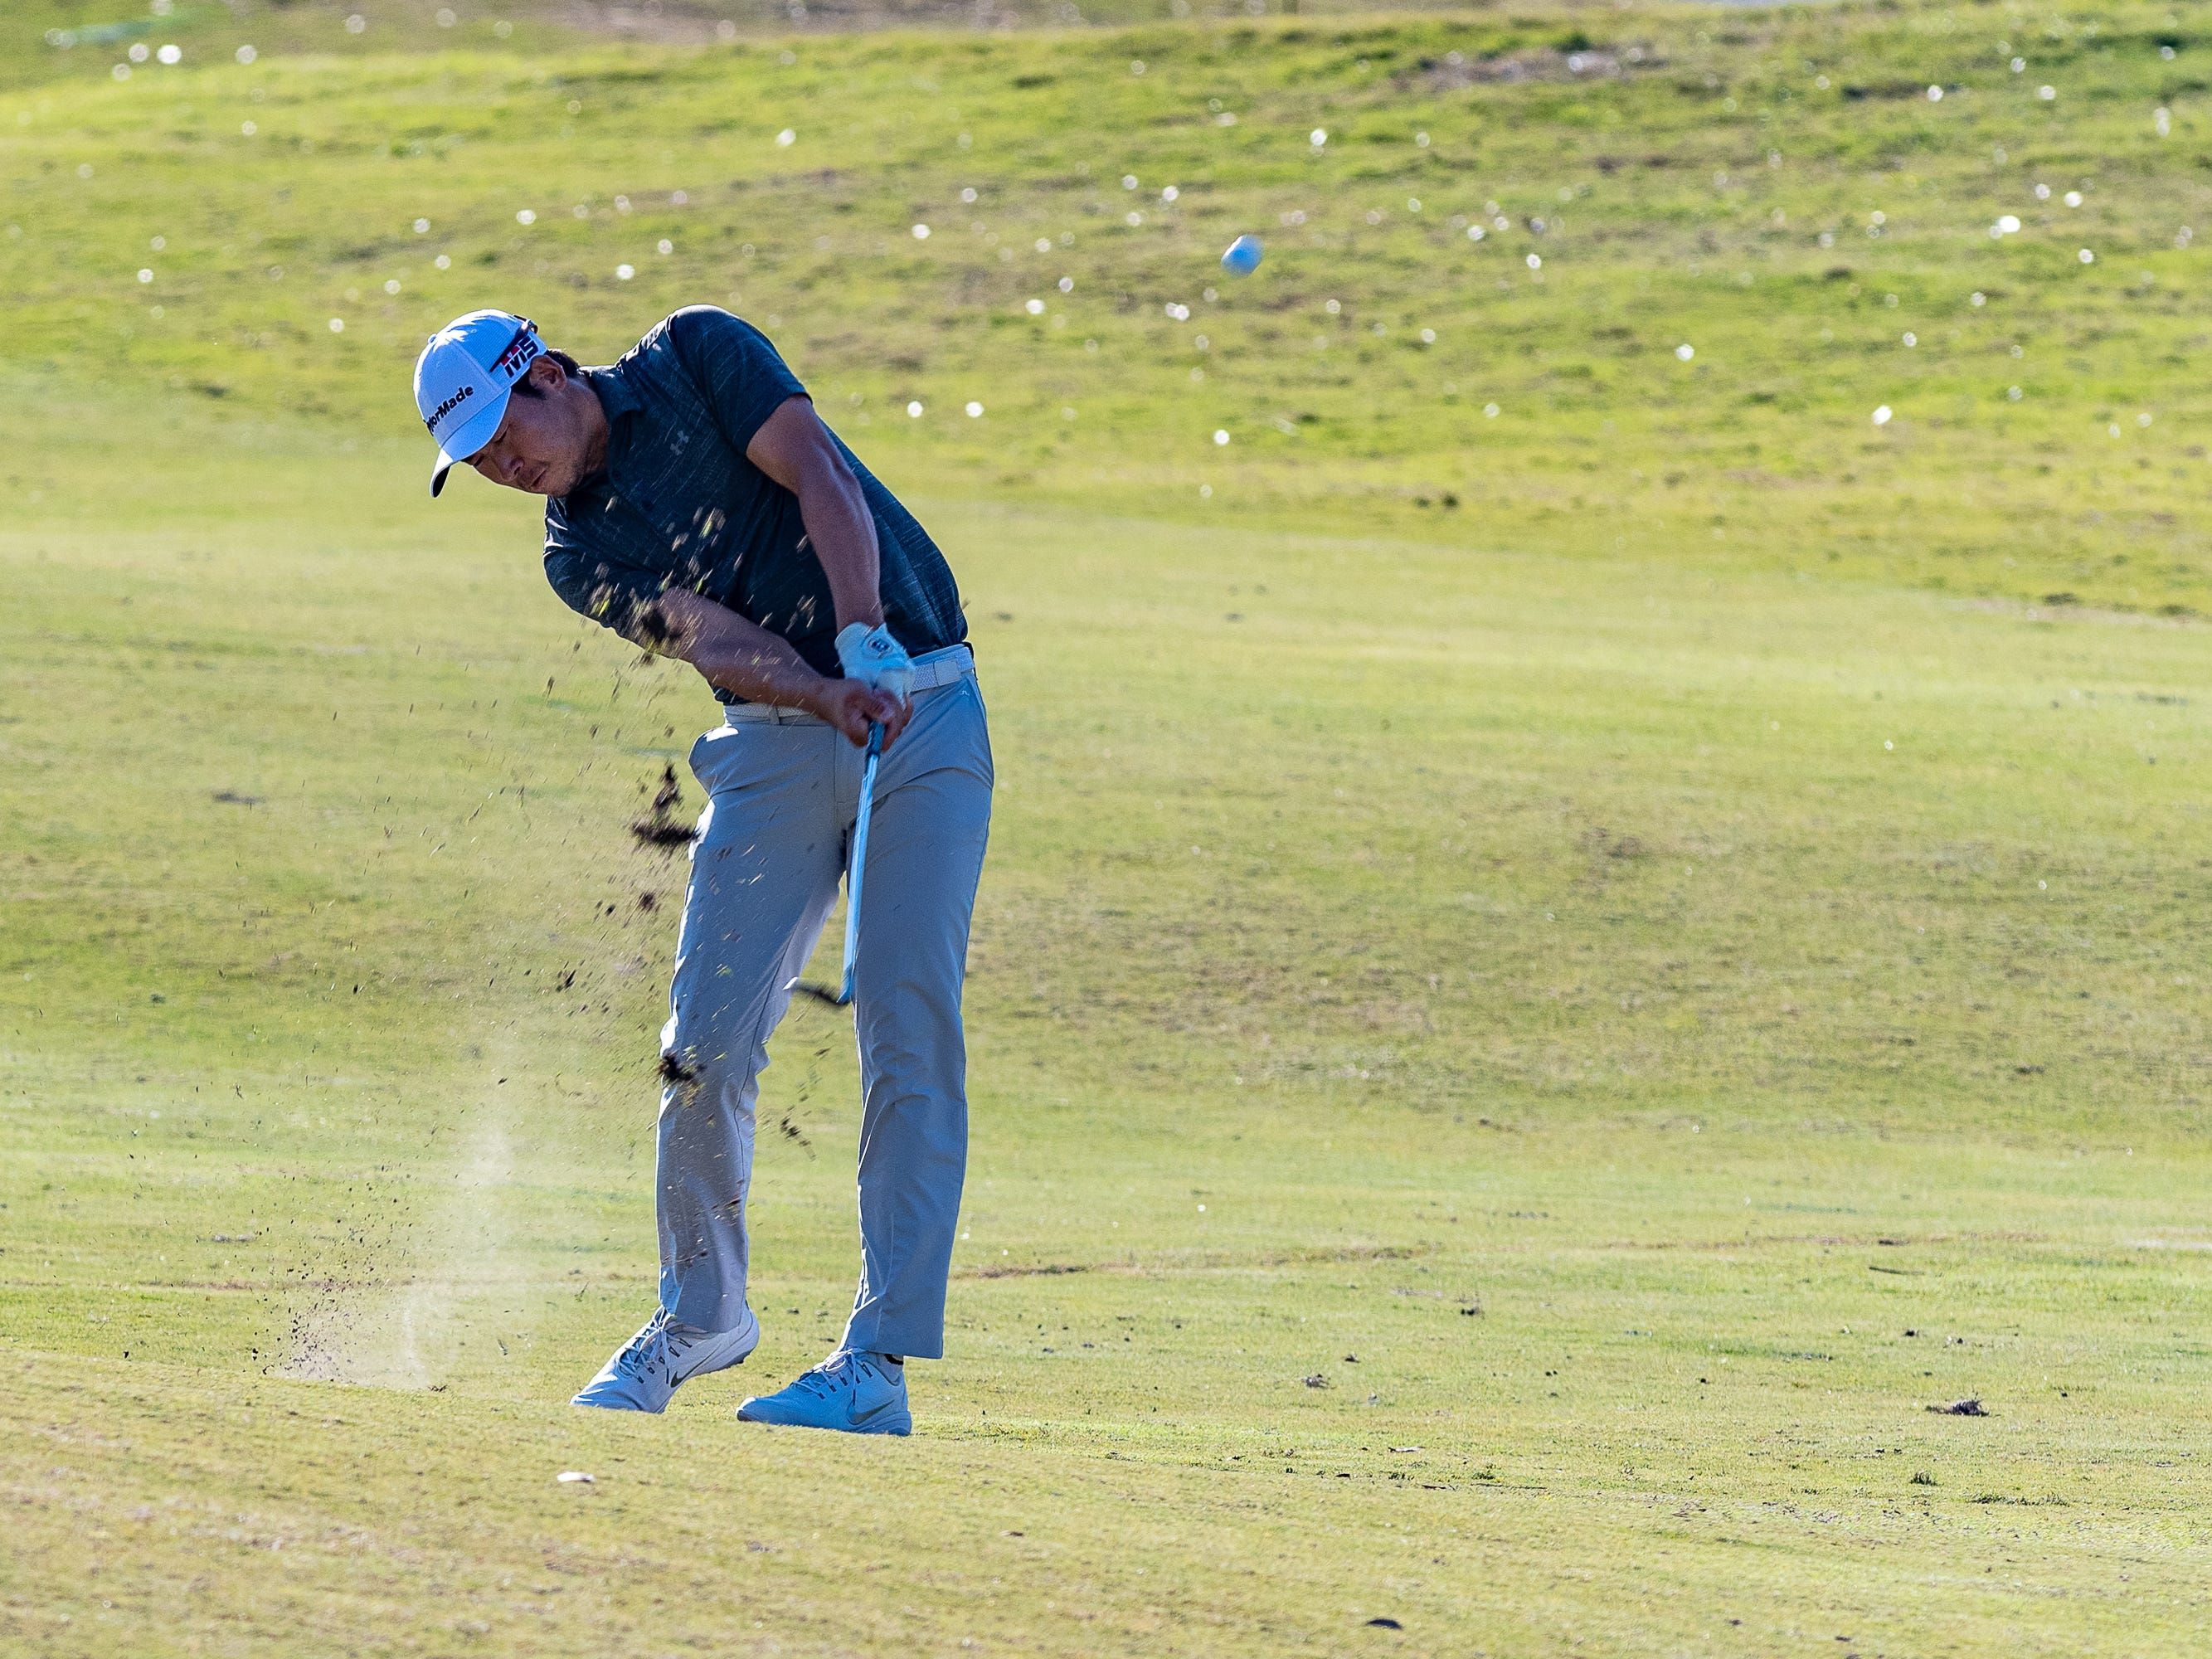 Zhang Xlnjun hits approach shot on 18 during the third round of The Web.com Tour in Lafayette for the 2019 Chitimacha Louisiana Open at Le Triomphe. Saturday, March 23, 2019.